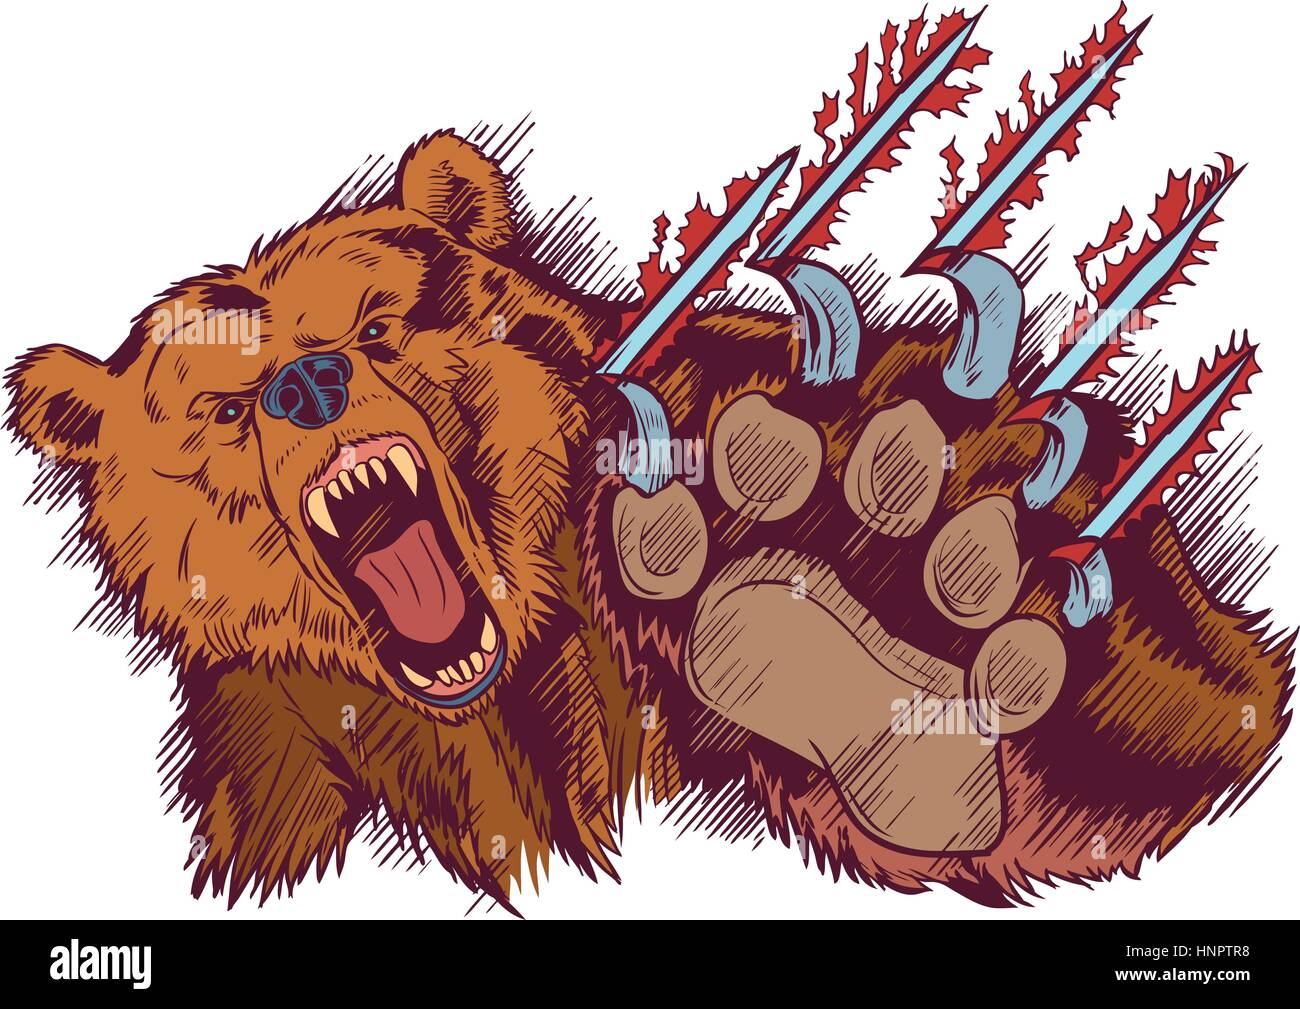 hight resolution of vector cartoon clip art illustration of a brown bear mascot slashing or clawing at the foreground